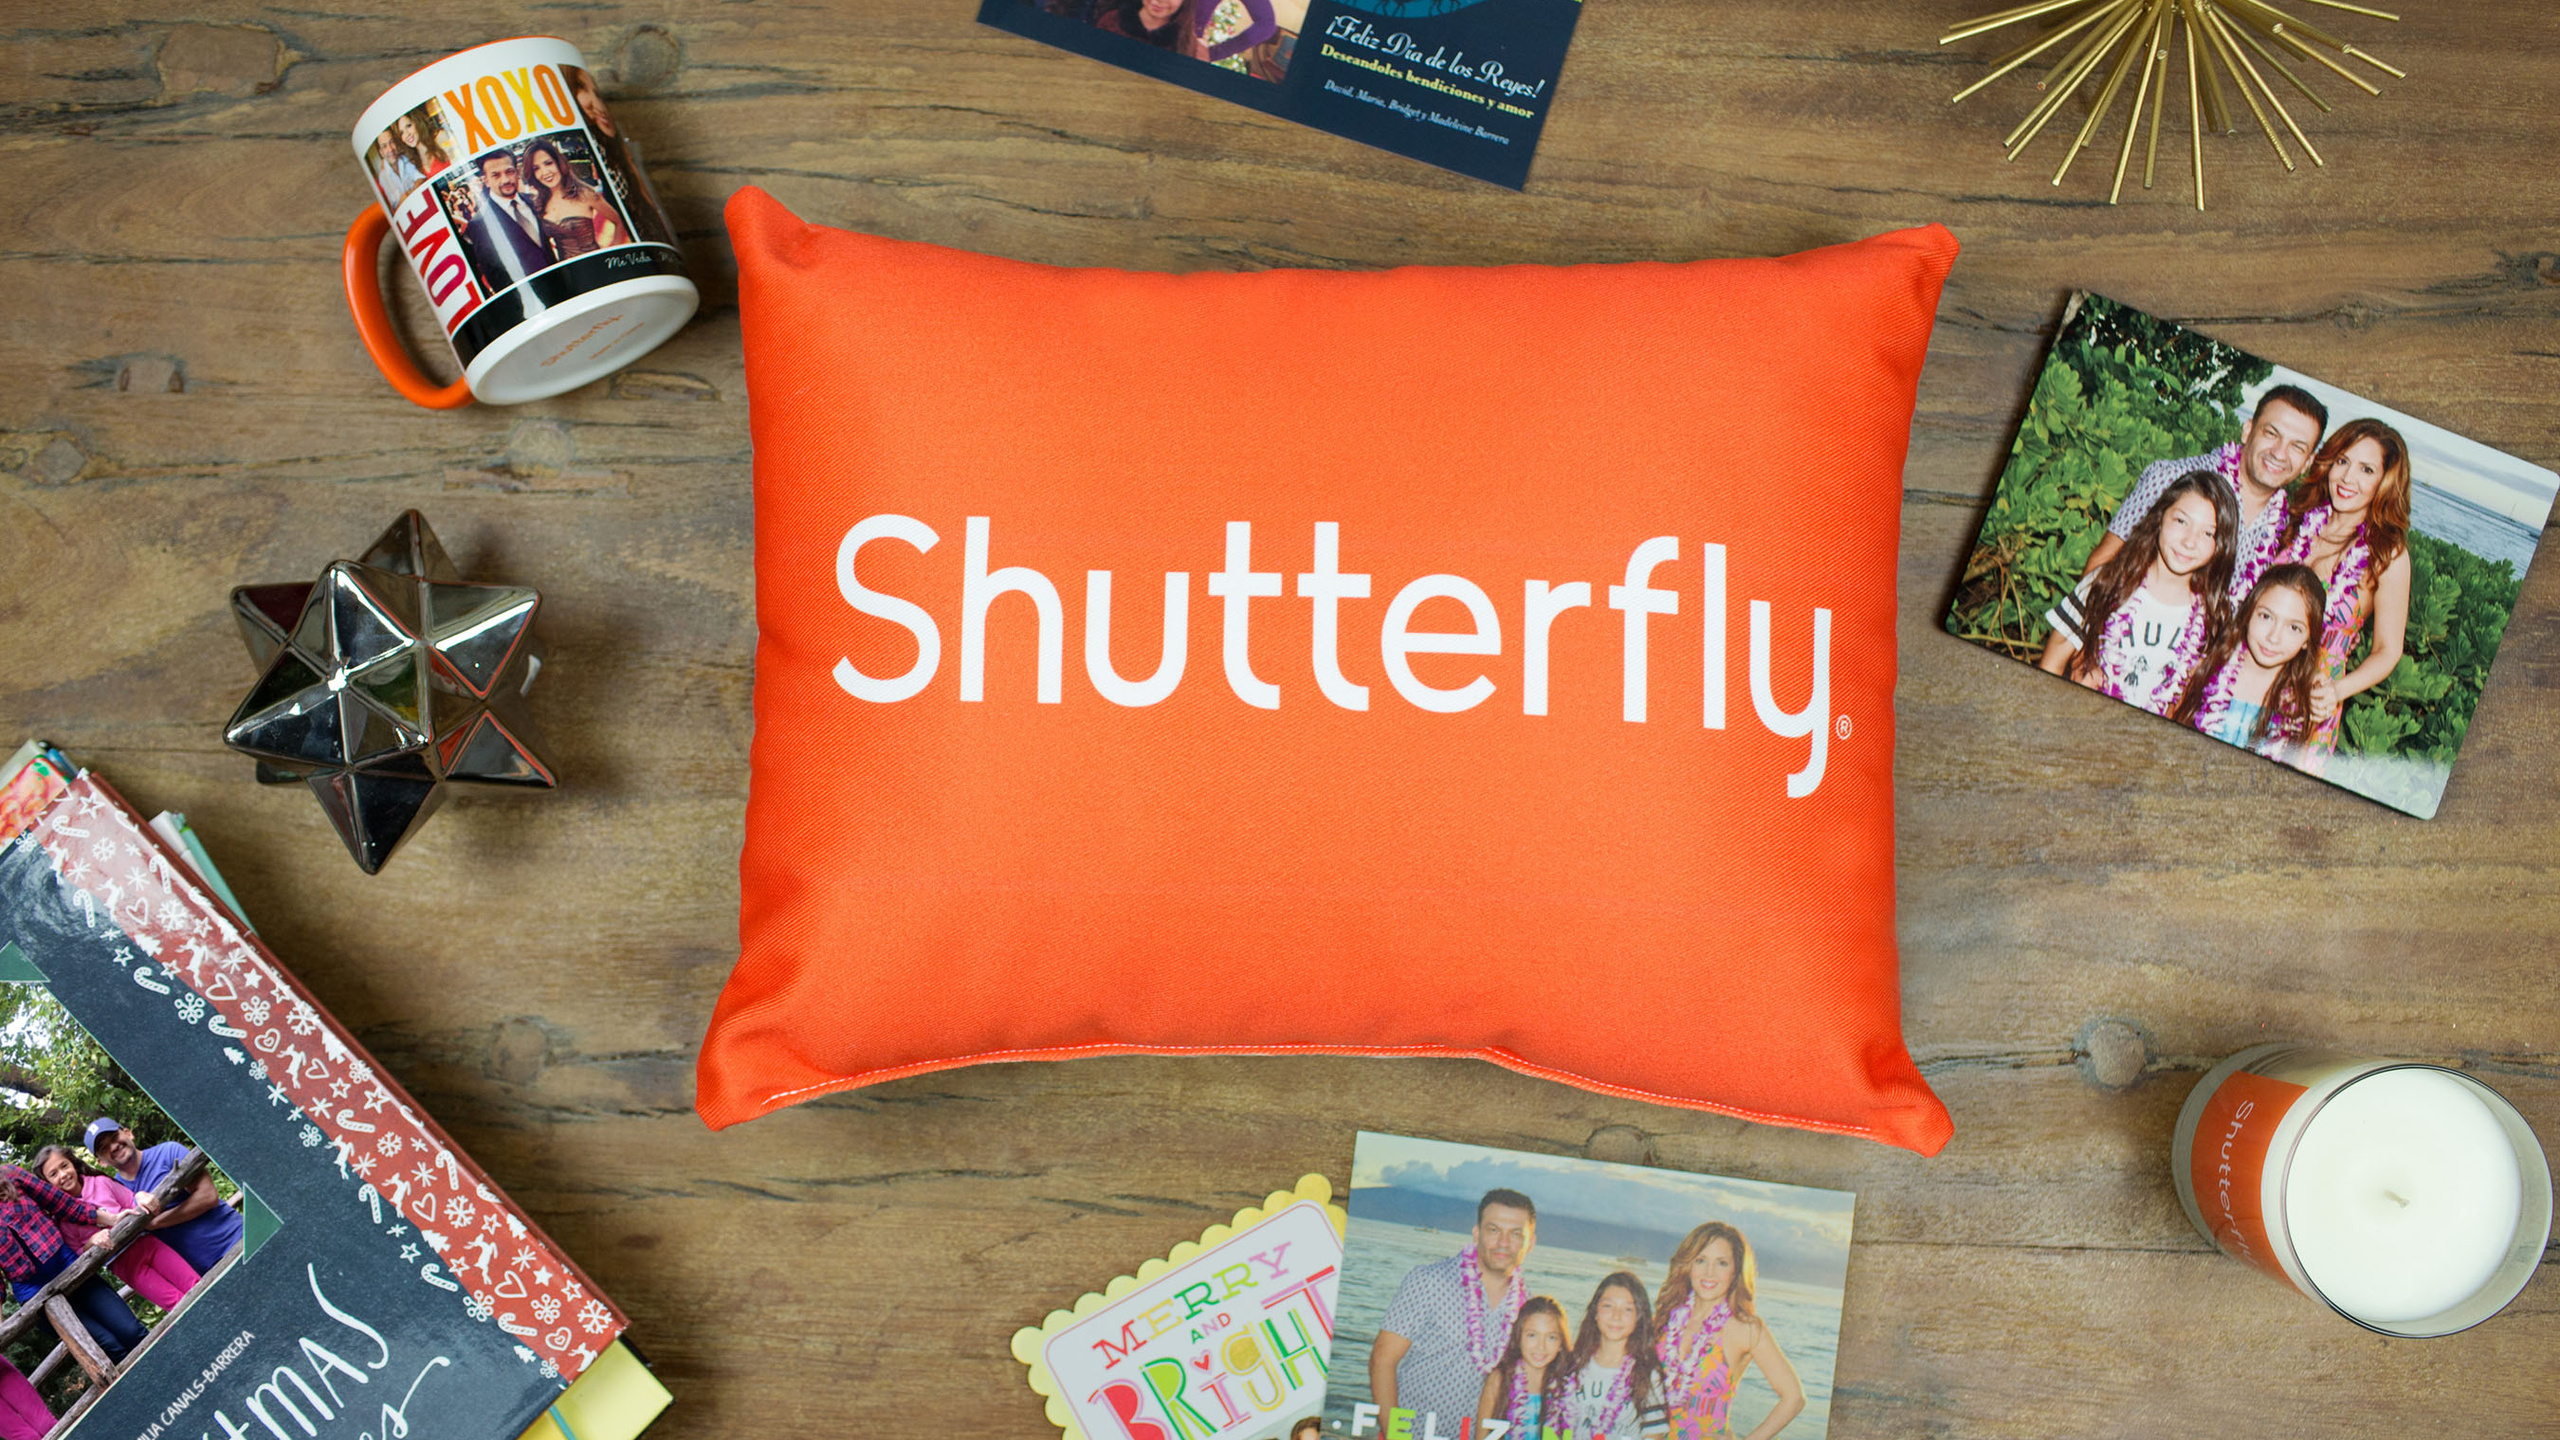 Image of: Shutterfly Pillow Promo Code